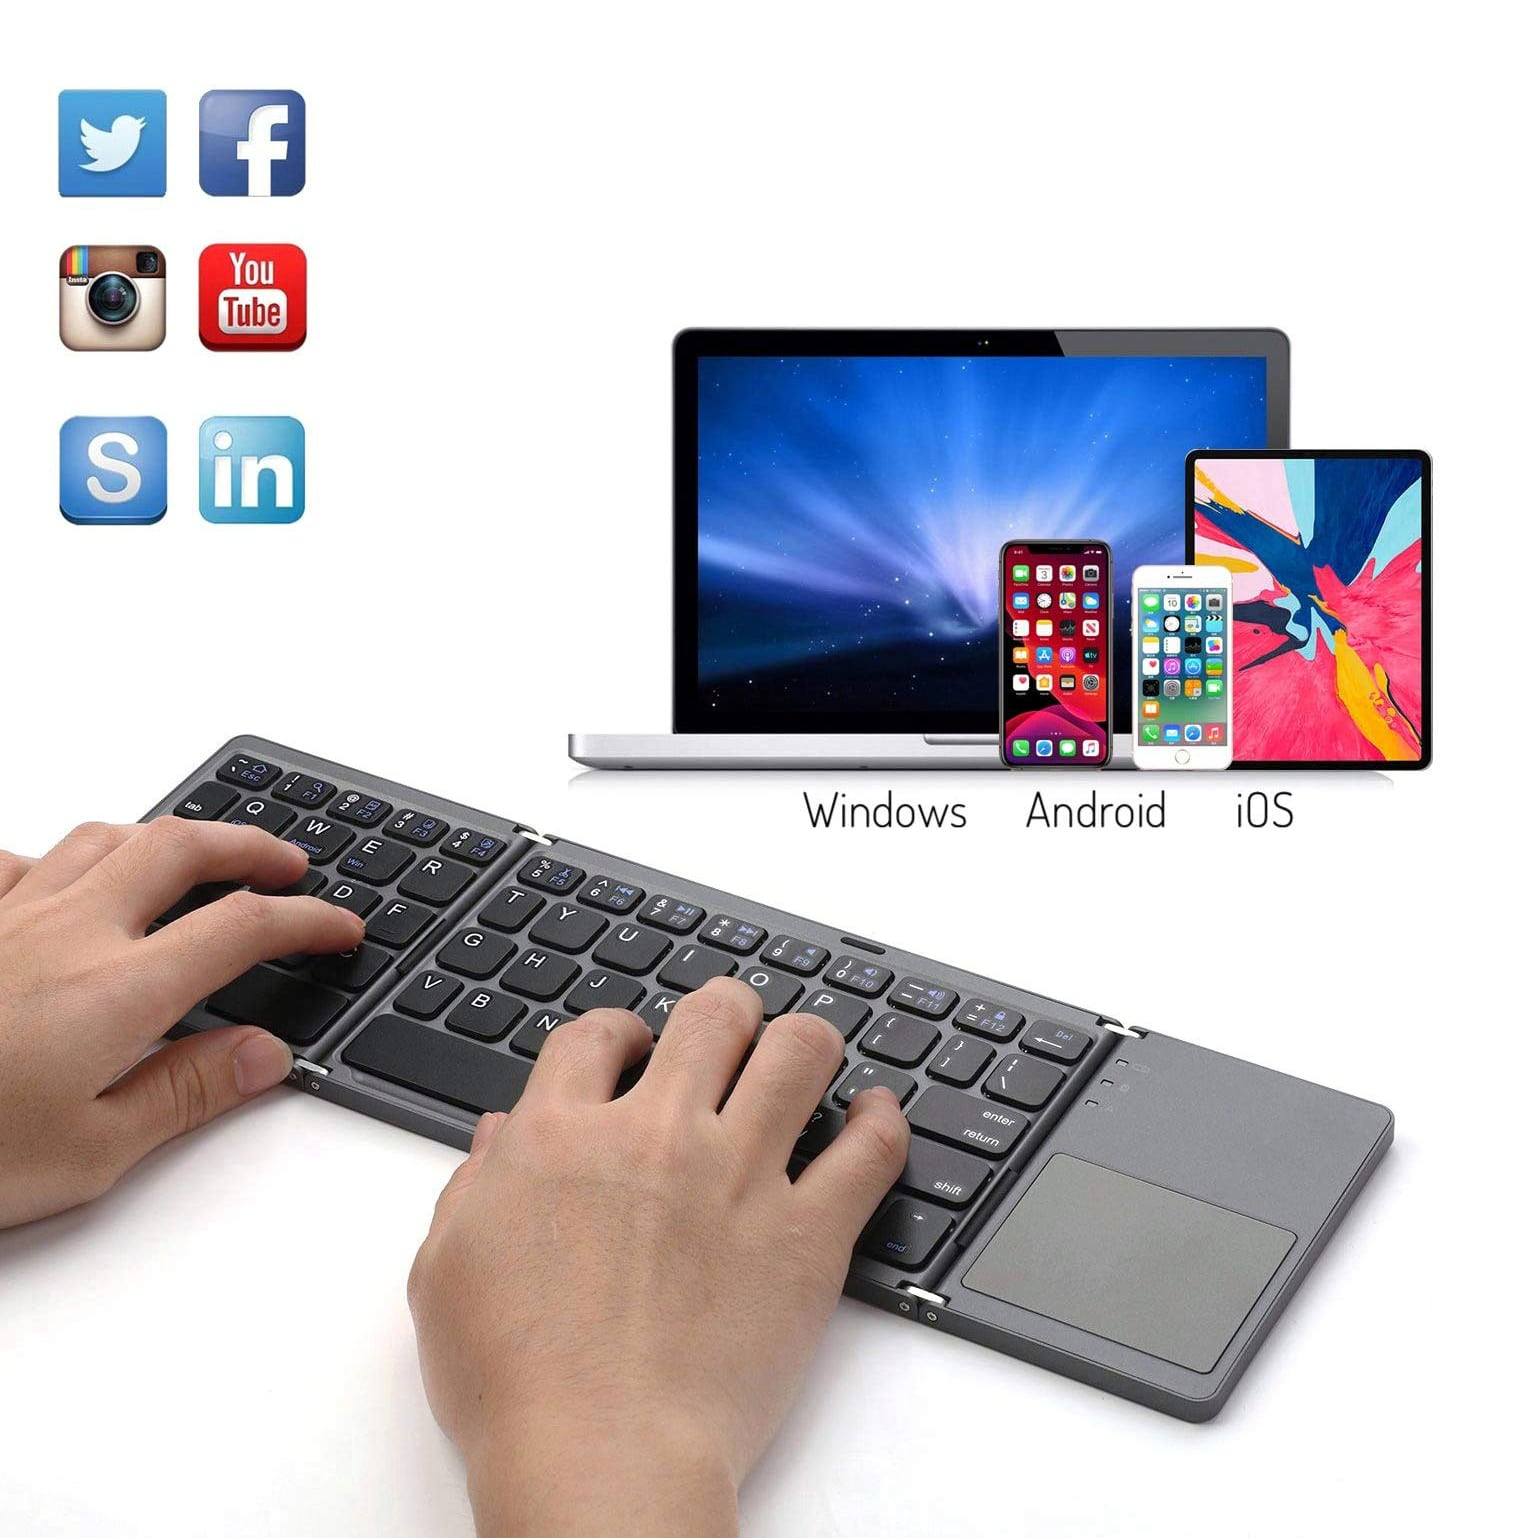 Black Support Android//iOS//Windows System Color : Black Comfortable and Freeing Hands Computer GK608 Ultra-Thin Foldable Bluetooth V3.0 Keyboard Built-in Holder